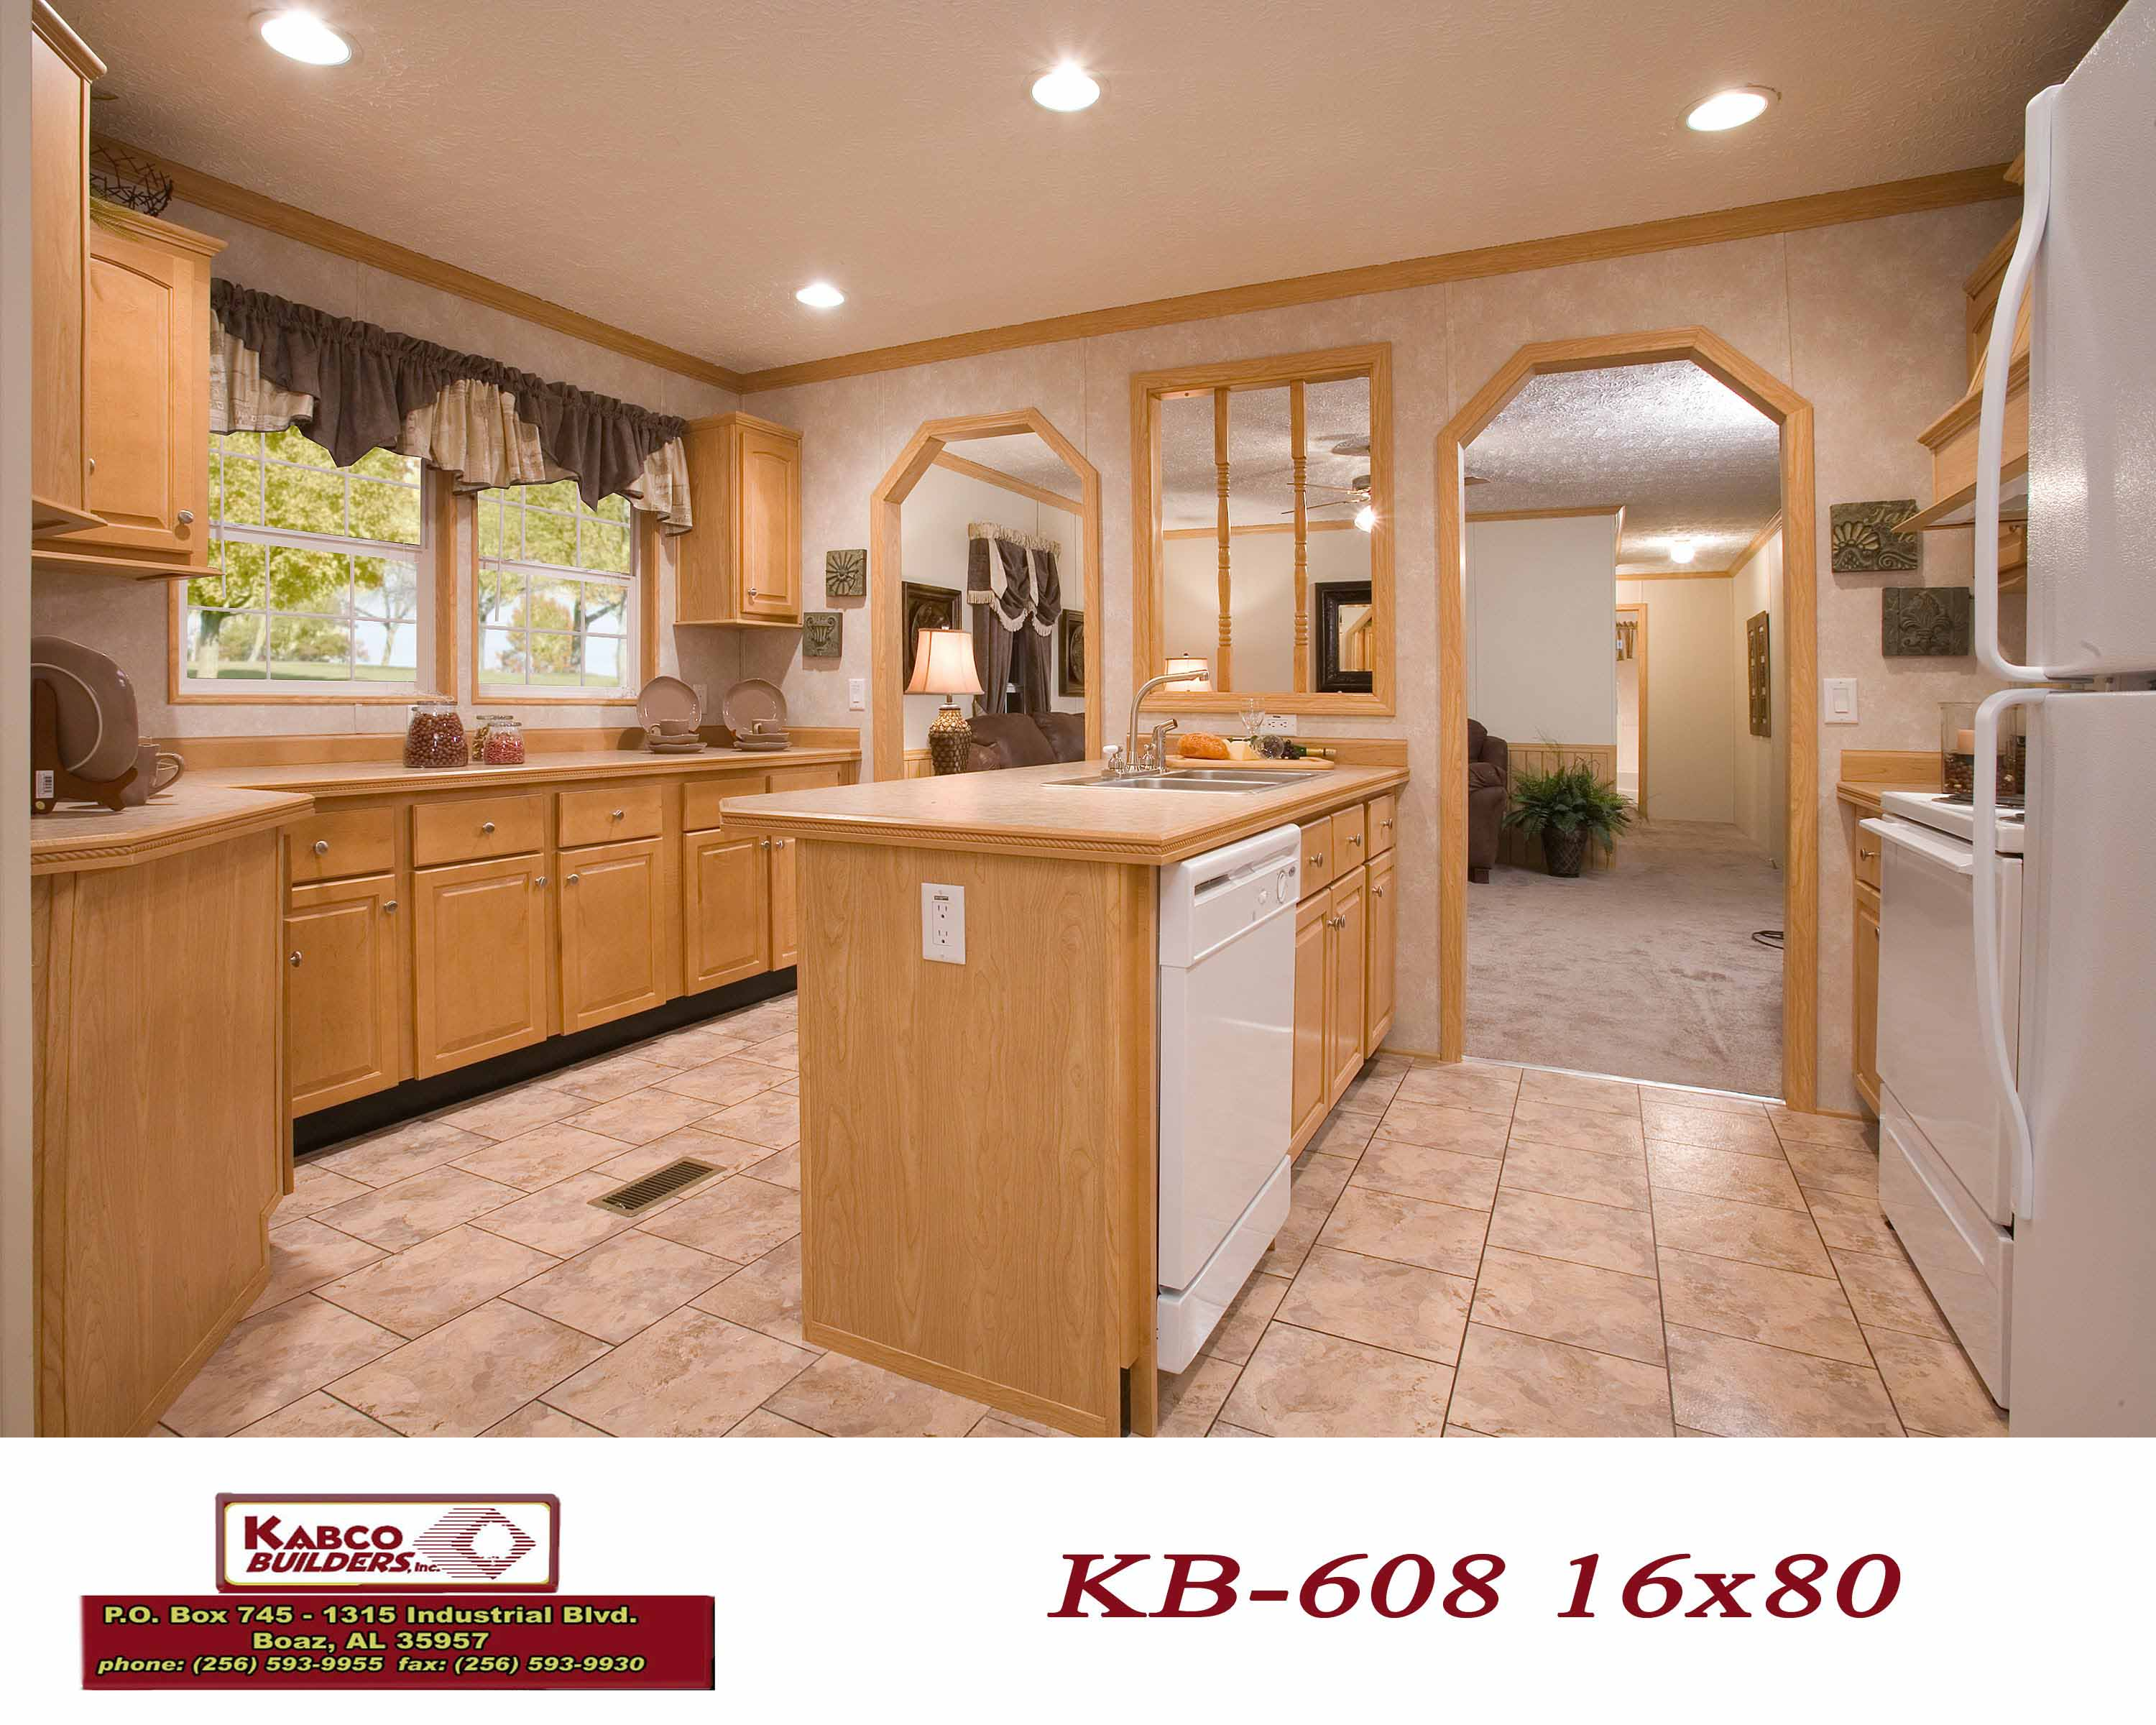 kitchen floor tile pictures kb platinum singles kb 608 by kabco builders inc 4829